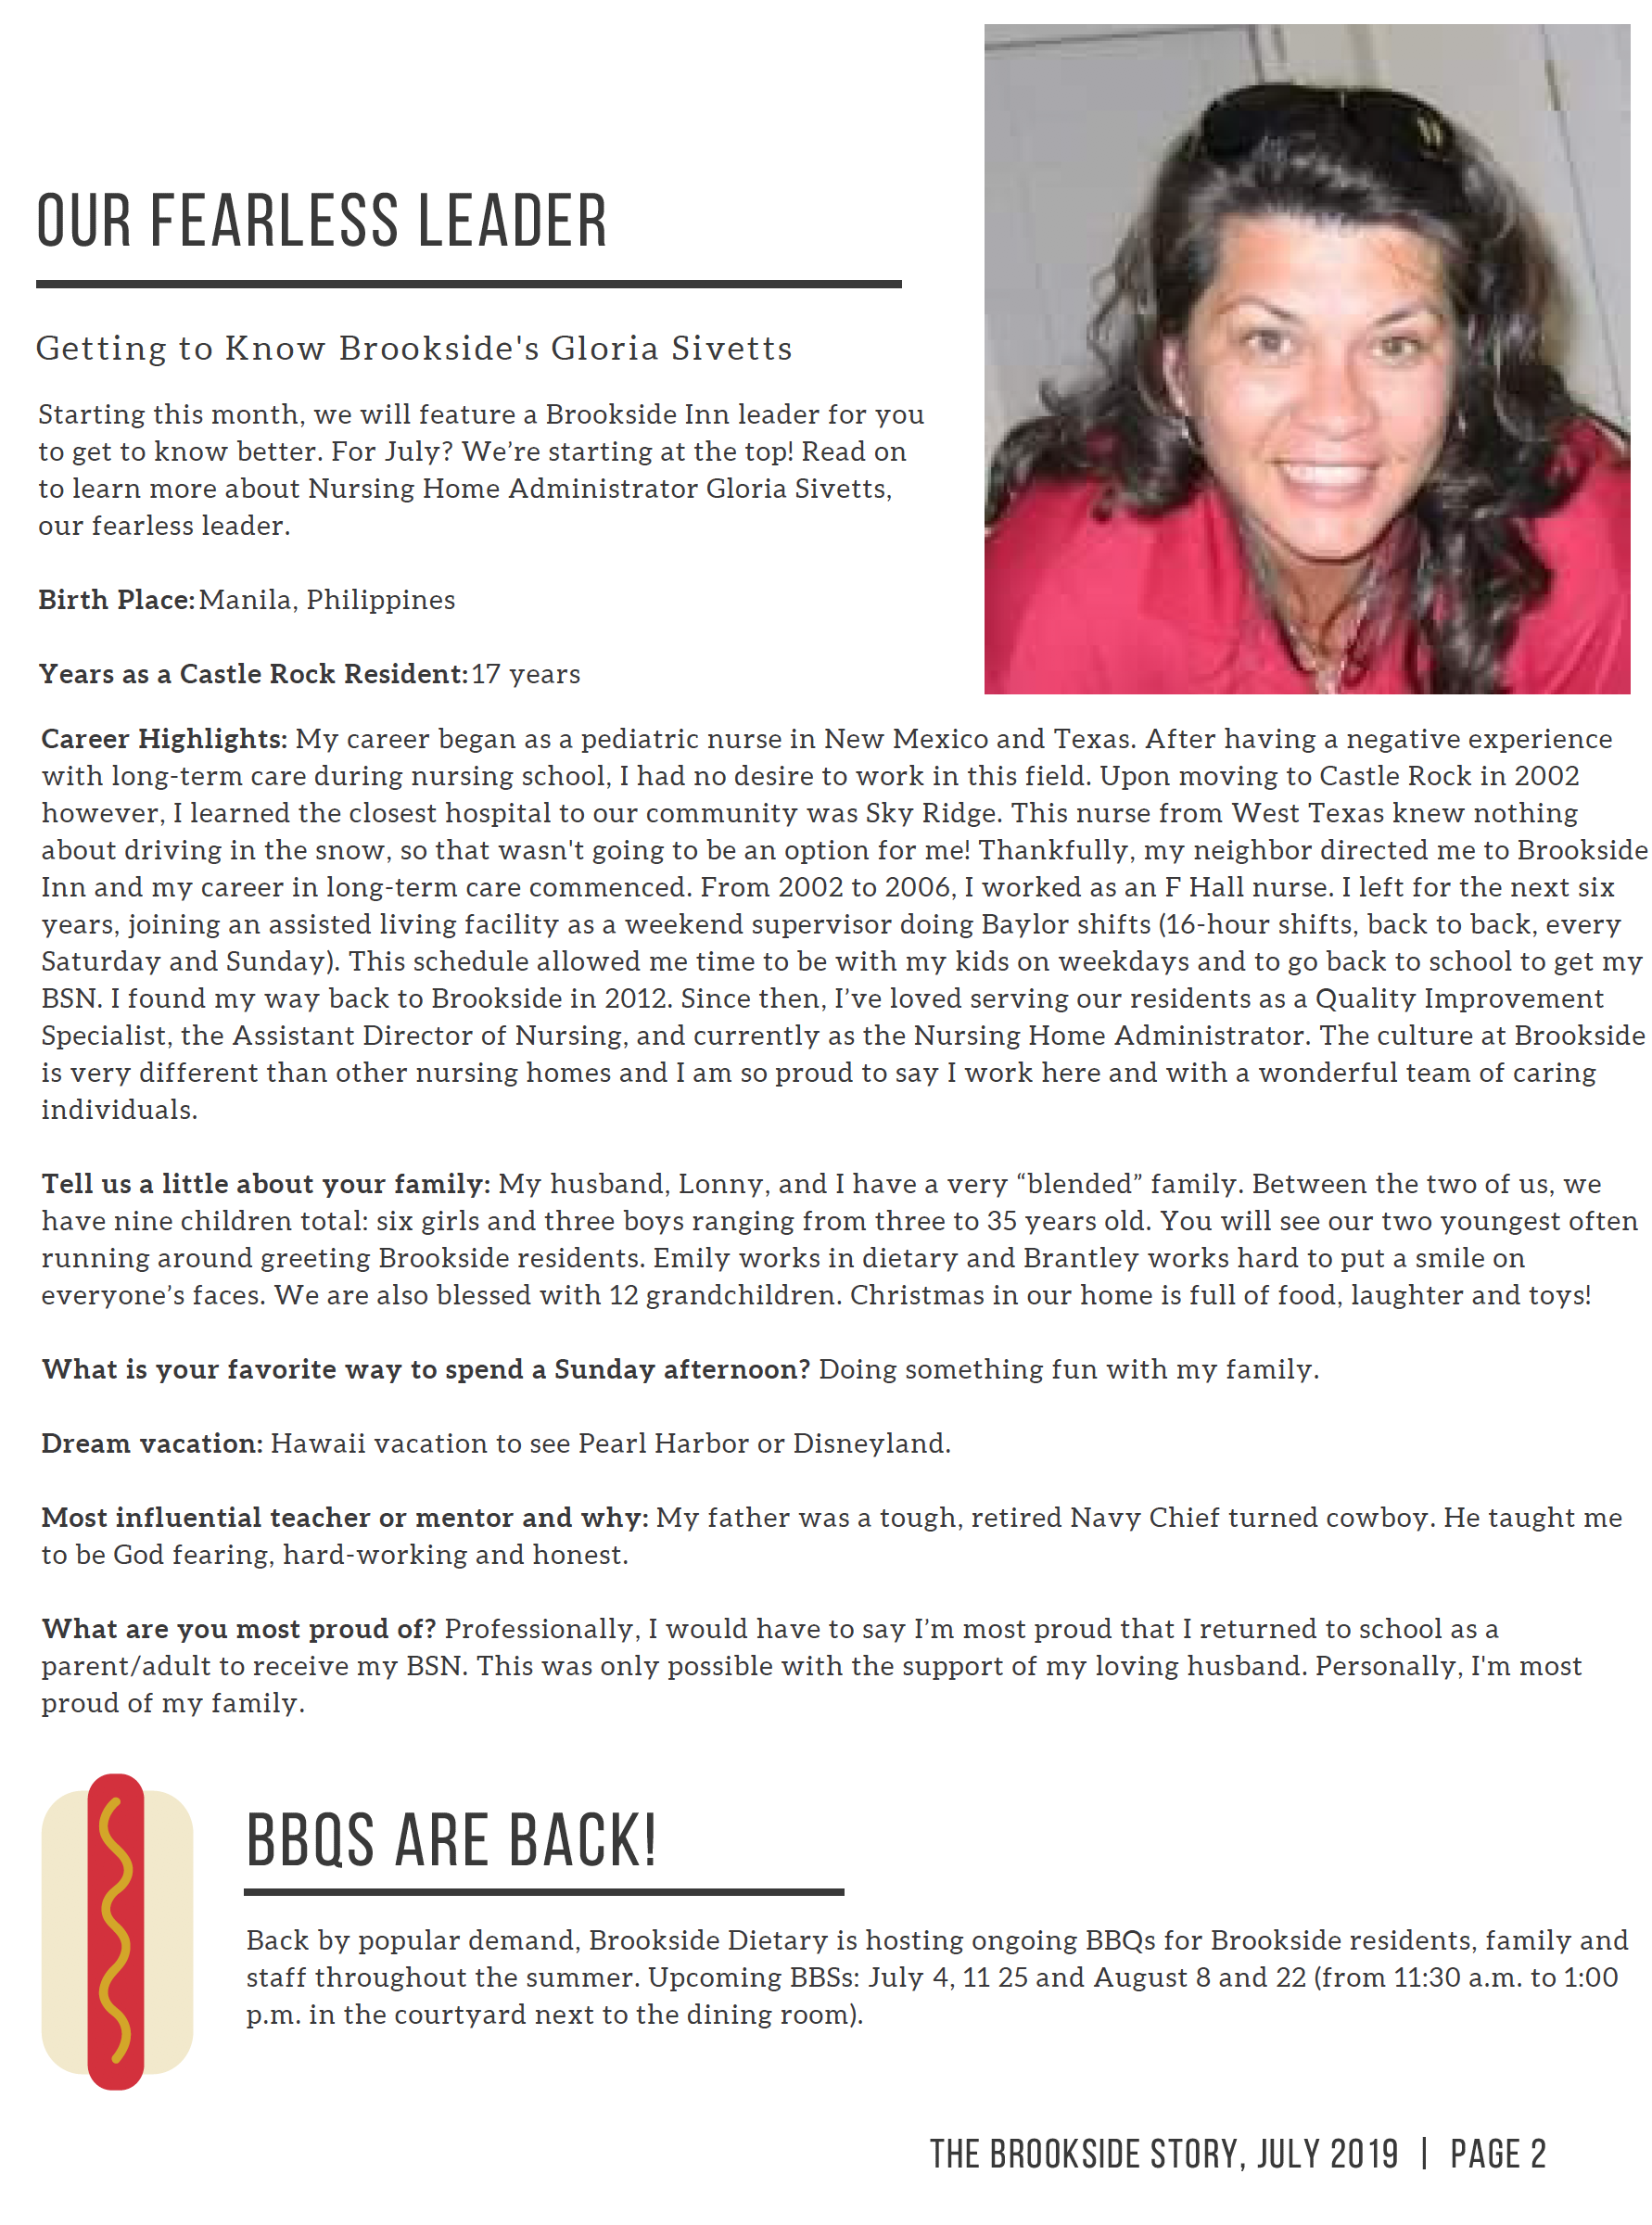 Page 2 - All about Gloria Sivetts, Nursing Home Administrator.